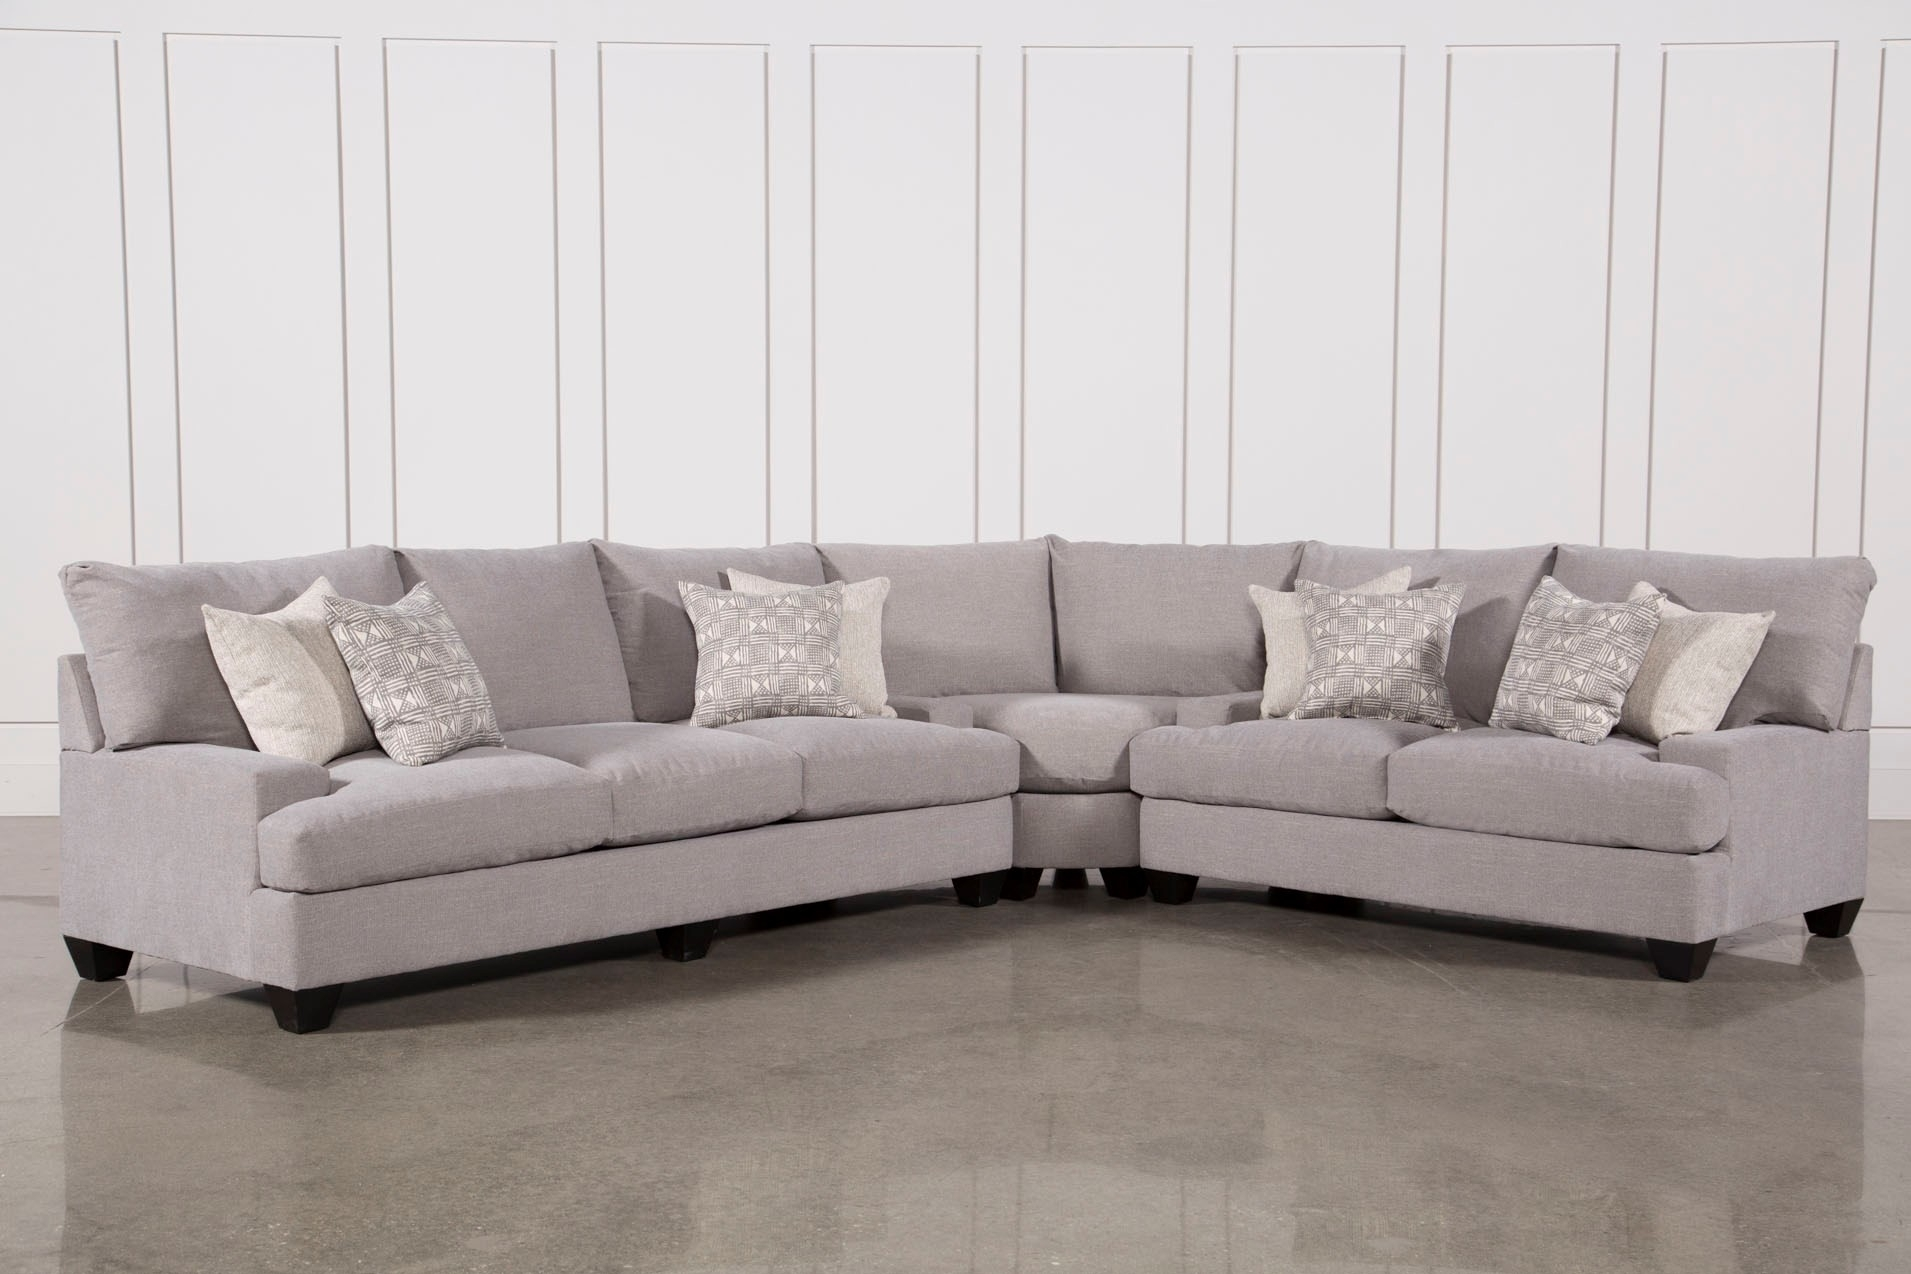 Living Spaces Sectional Alder 4 Piece Youtube Maxresdefault throughout Alder 4 Piece Sectionals (Image 19 of 30)